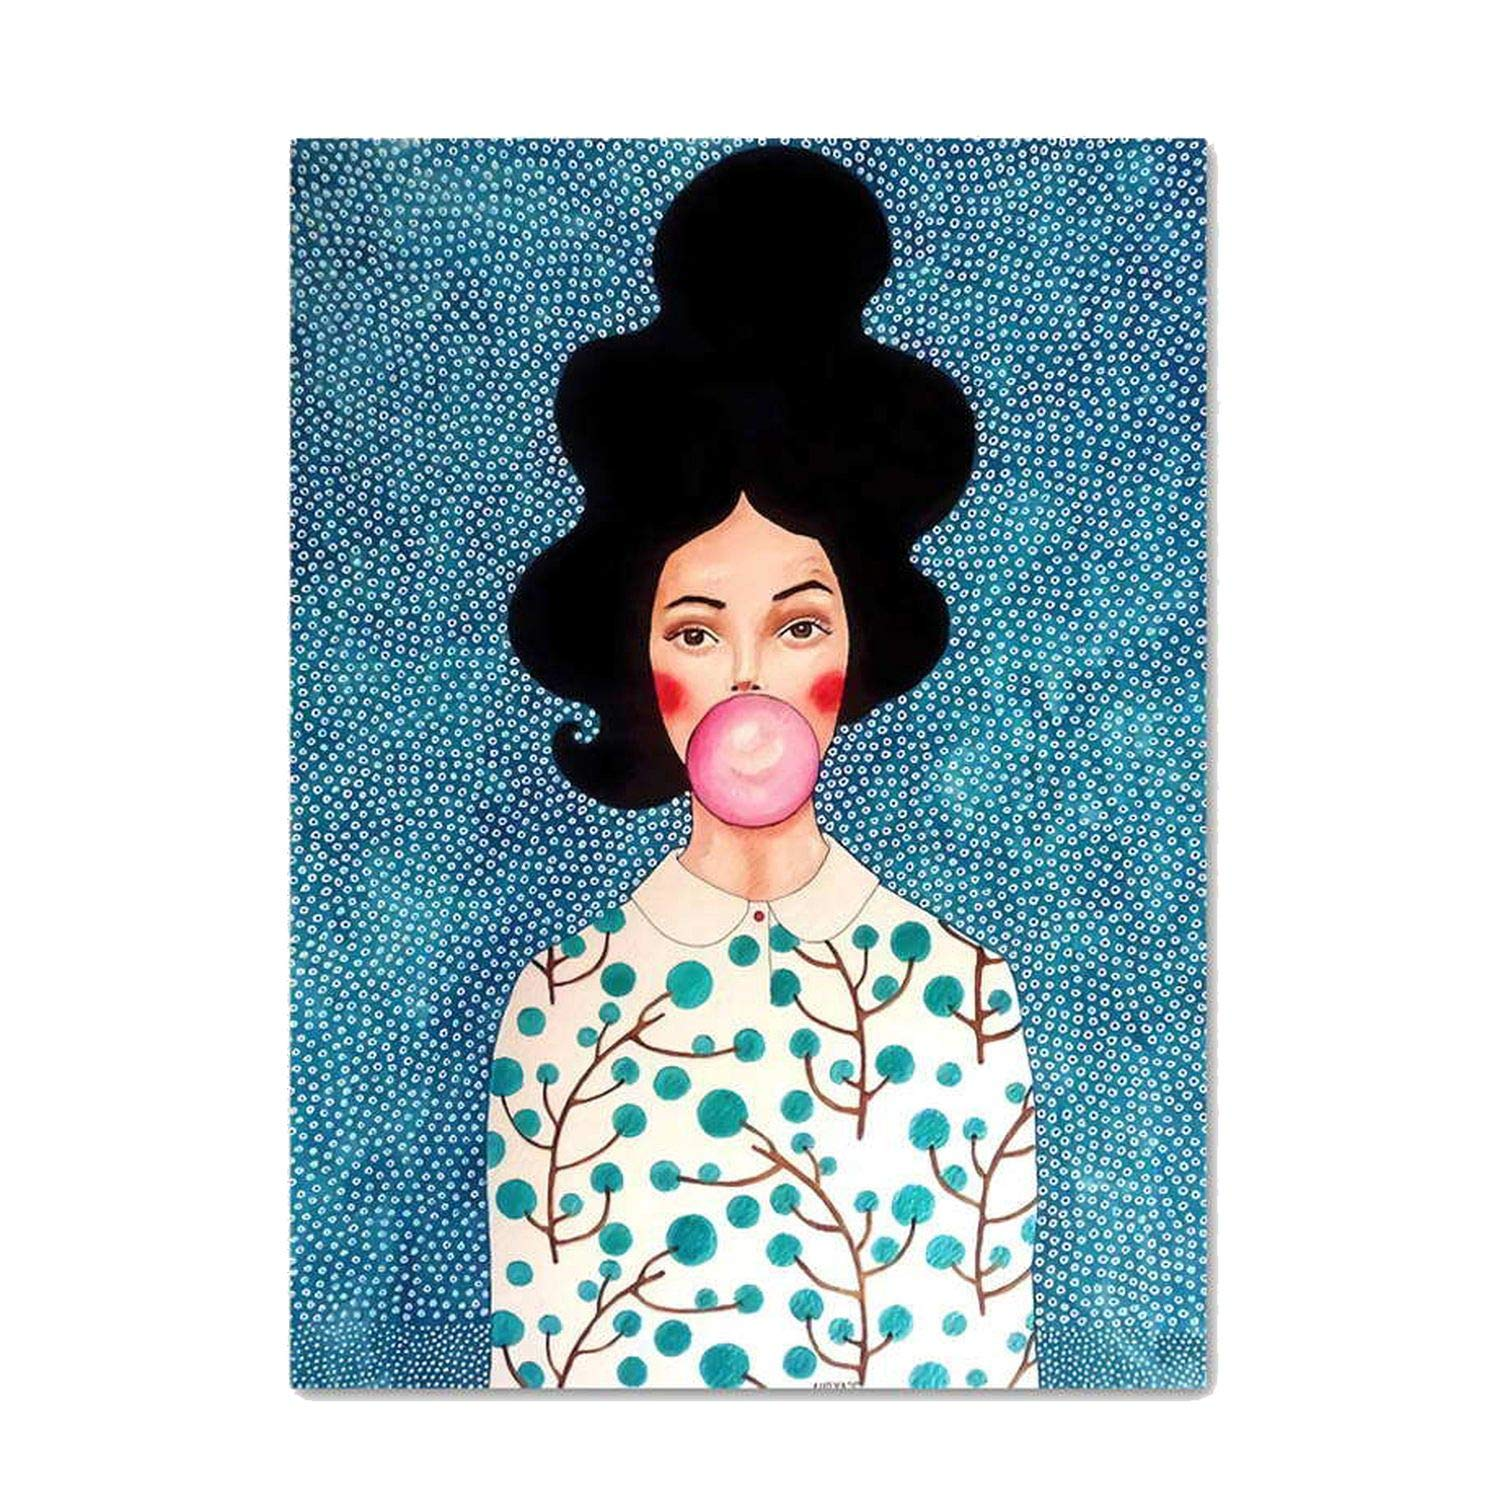 ABBY CHAMBERS Abstract Retro Girl Wall Art Canvas Painting Nordic Posters and Prints Wall Pictures Home Decor,50x70 cm No Framed,L53